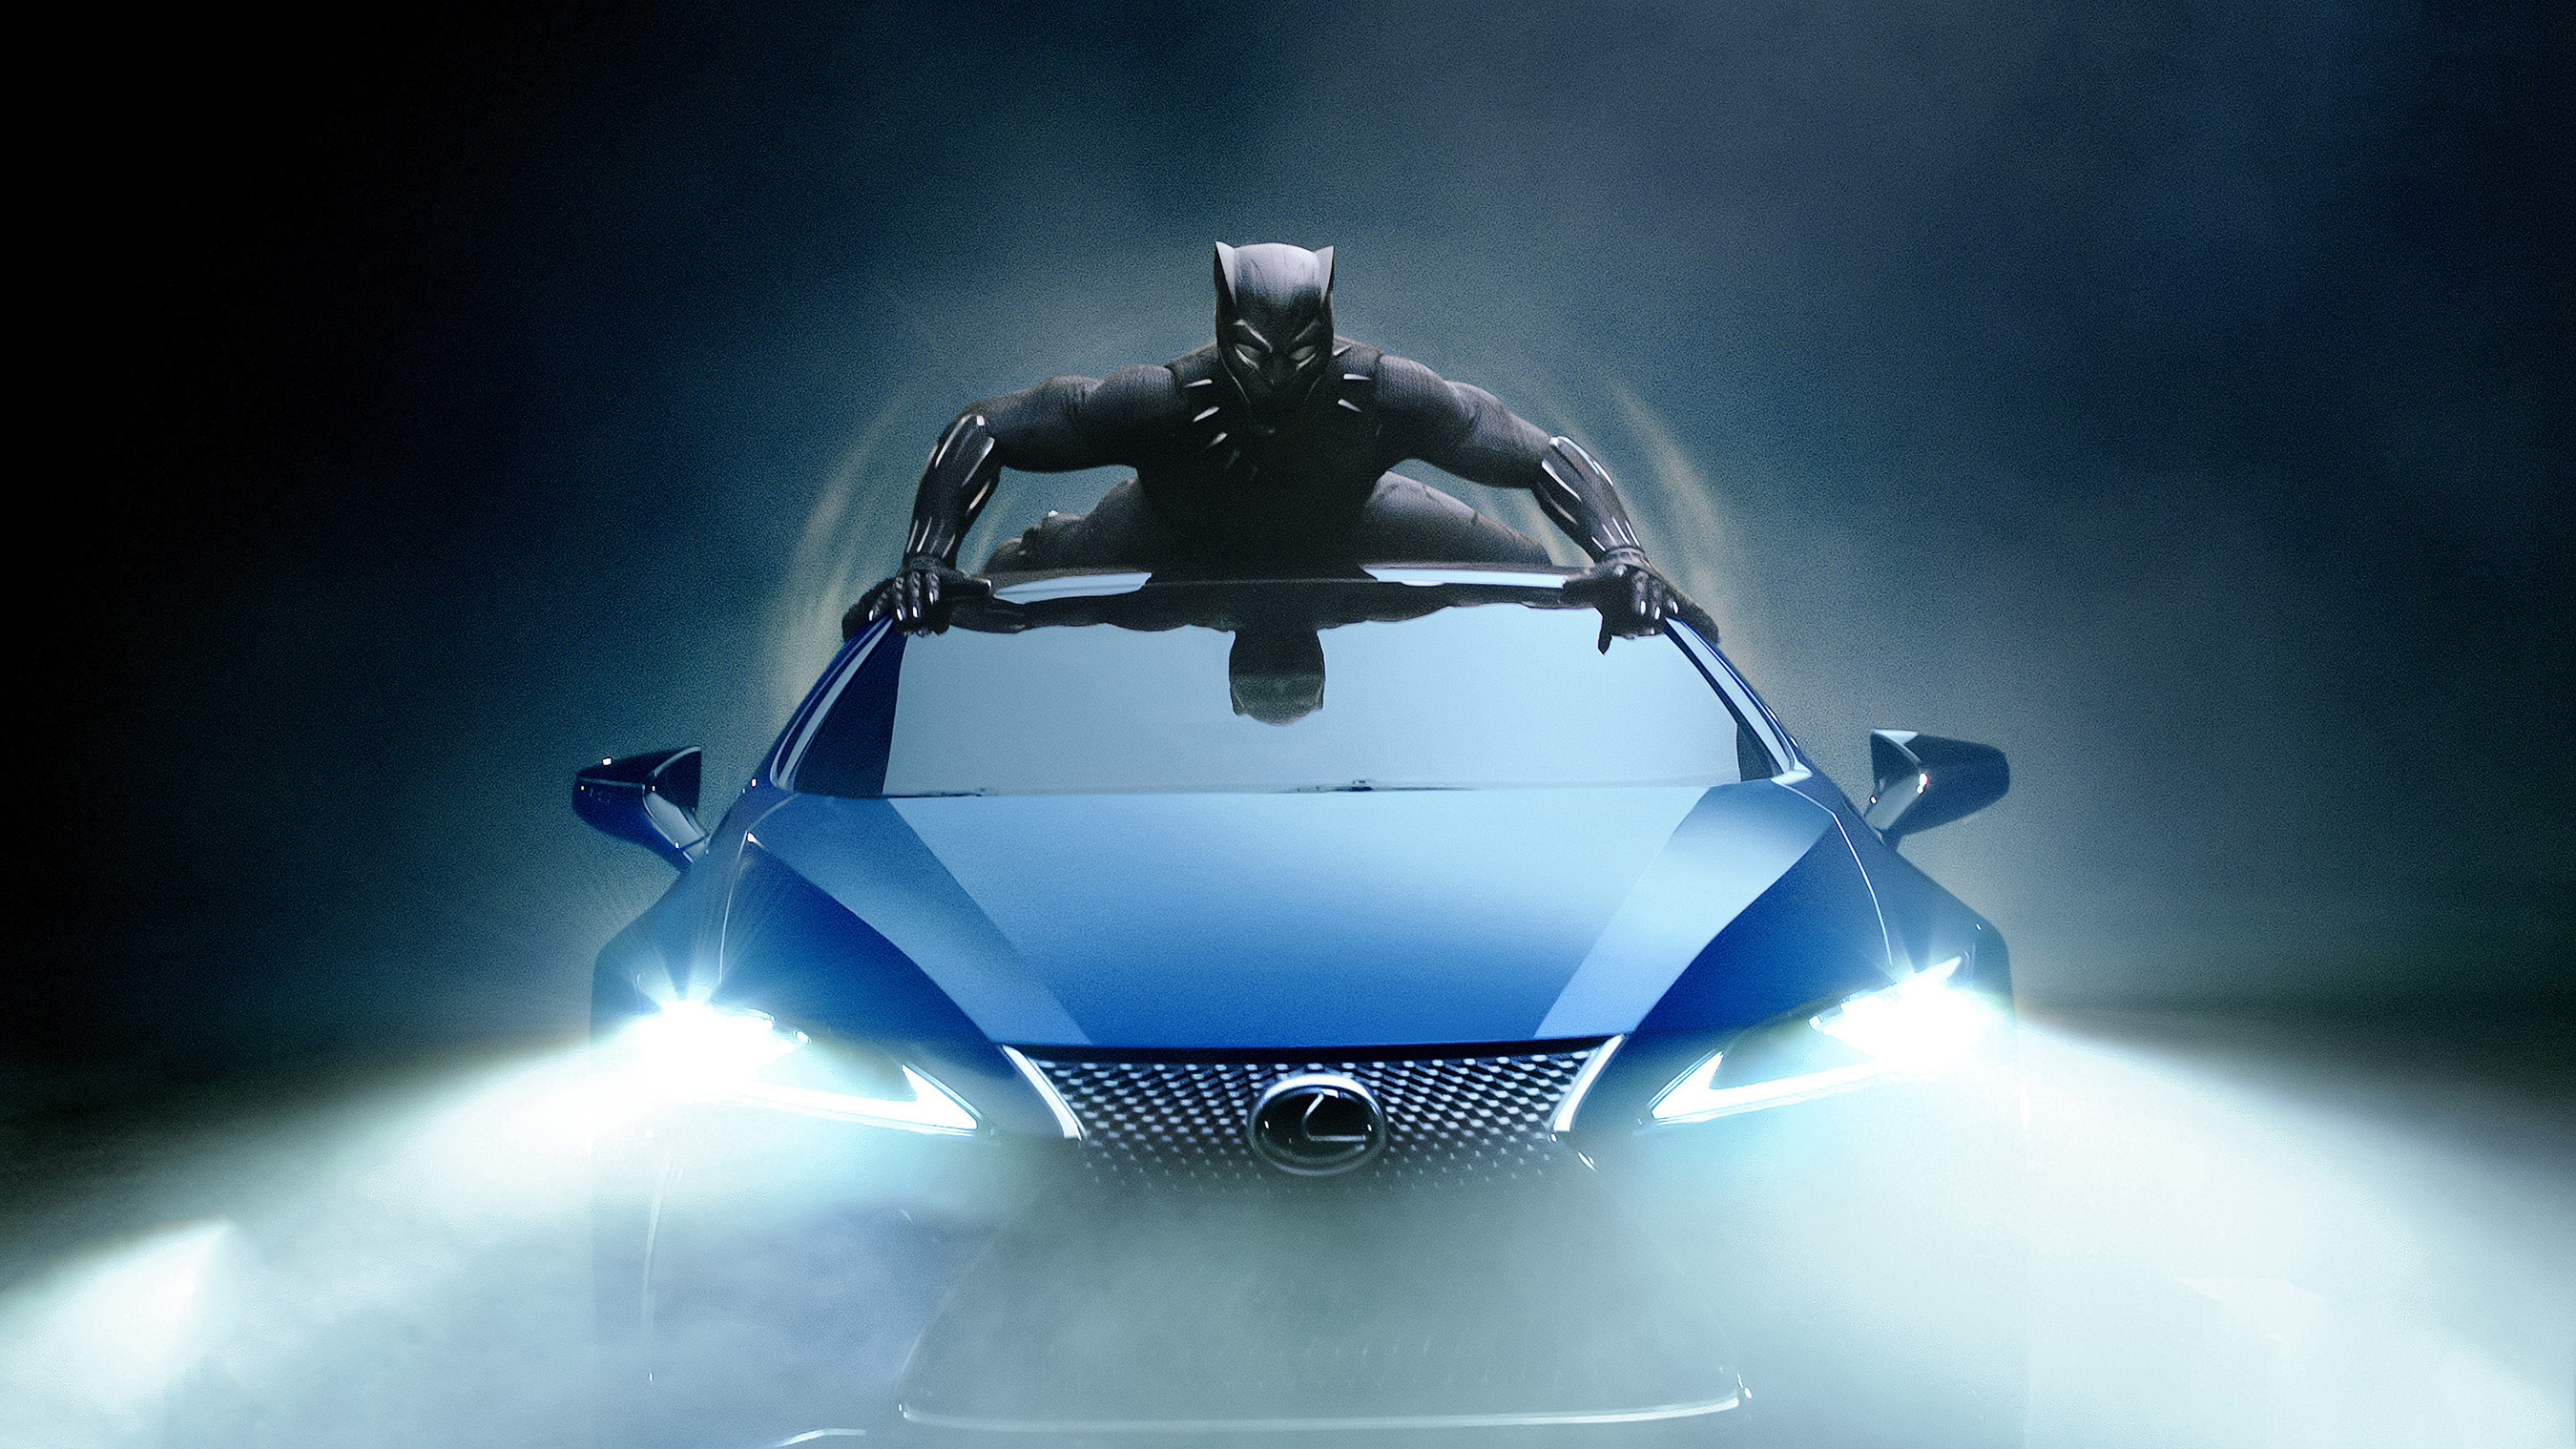 Black Panther 2018 Movie Still Full Hd Wallpaper: Lexus Black Panther LC 500 2018 Car, HD Movies, 4k